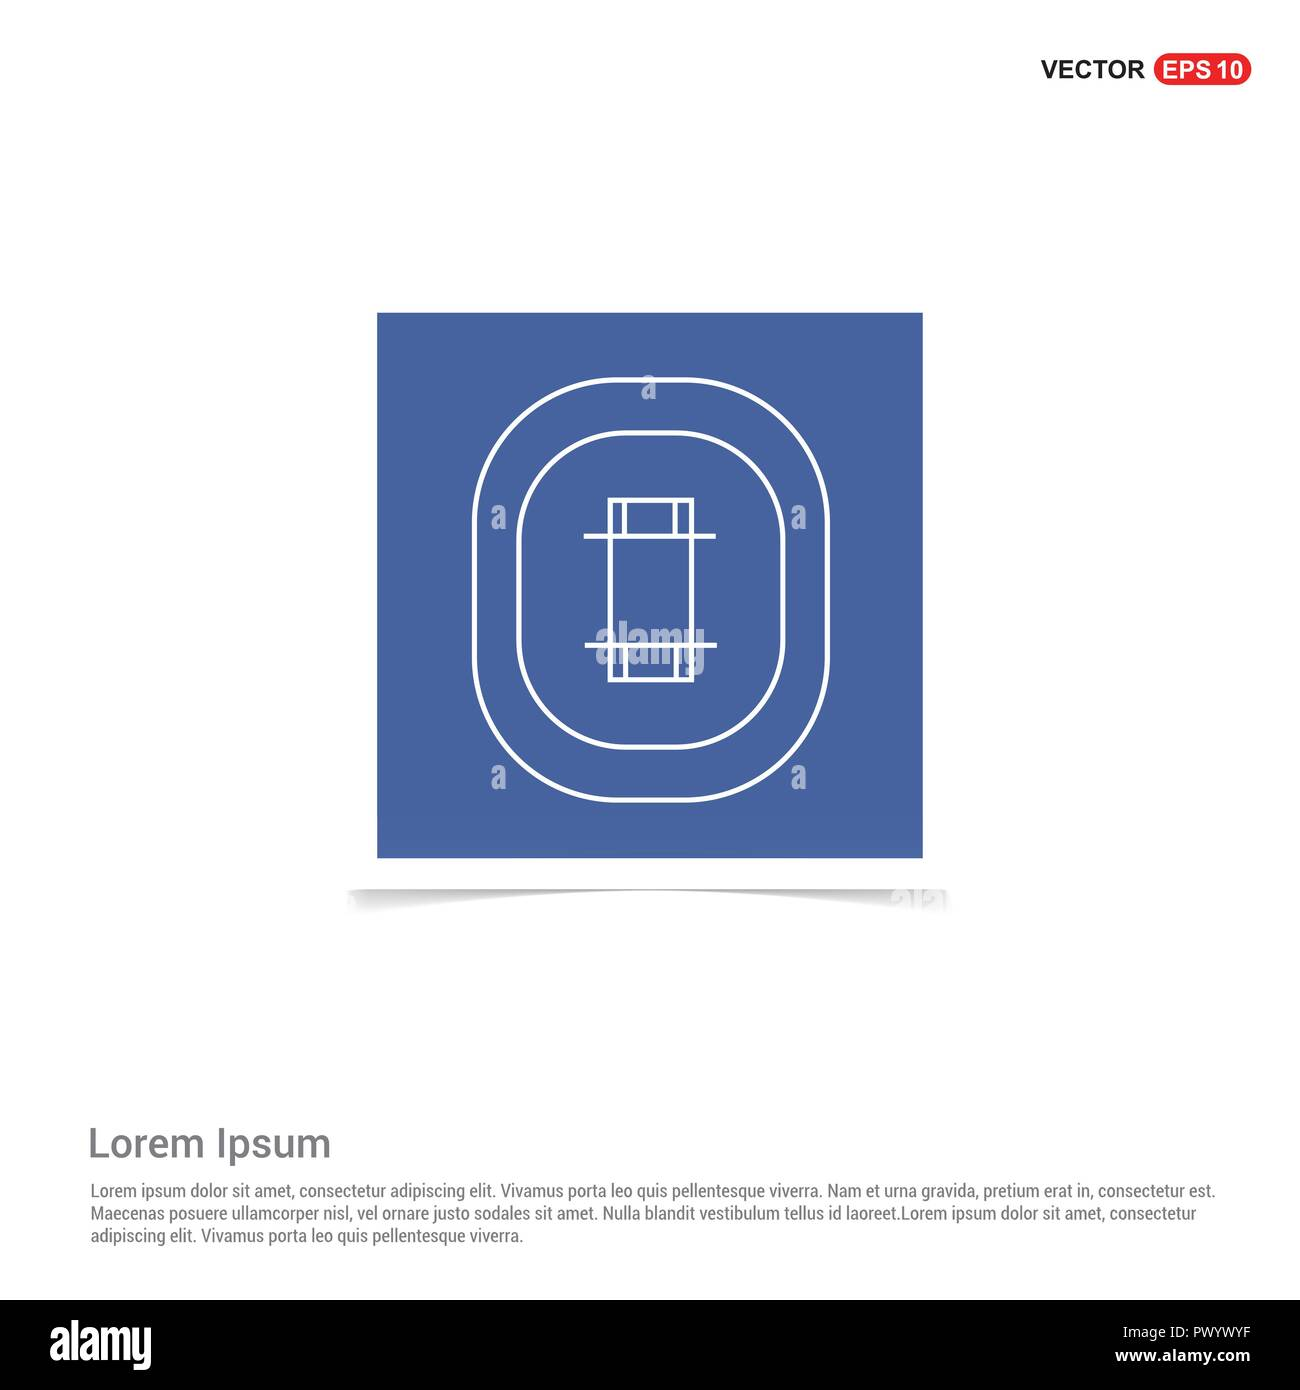 cricket stadium icon - blue photo frame